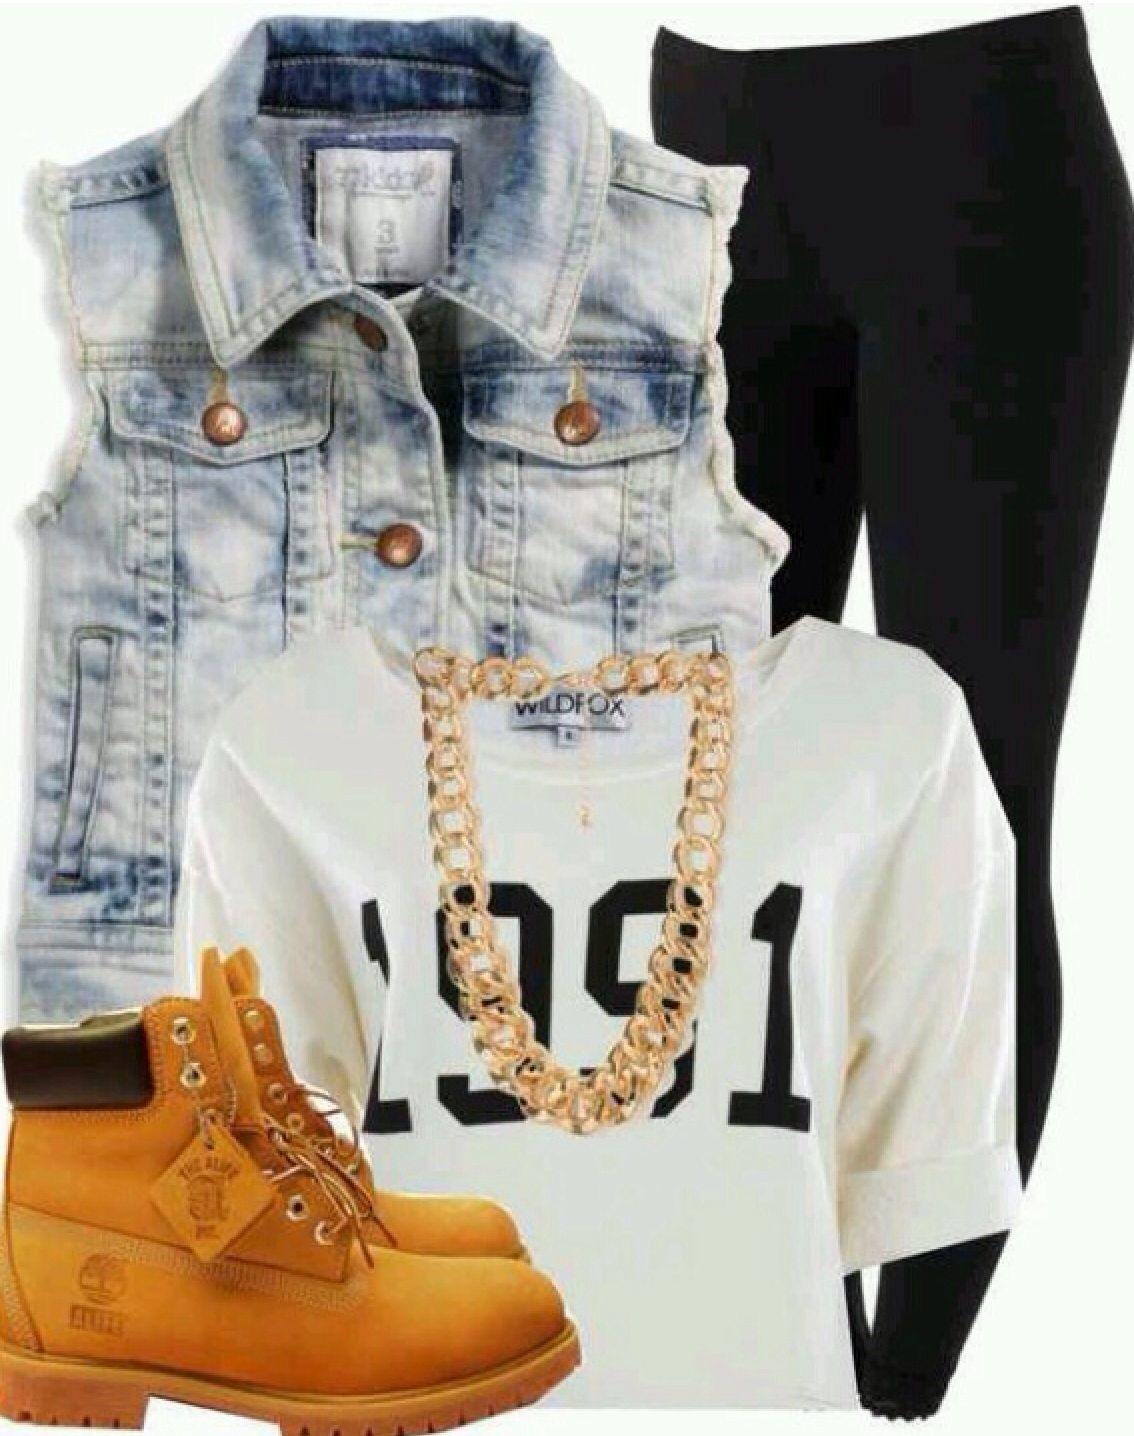 Timberlands l want this outfit | DOPE/FLY OUTFITS ...